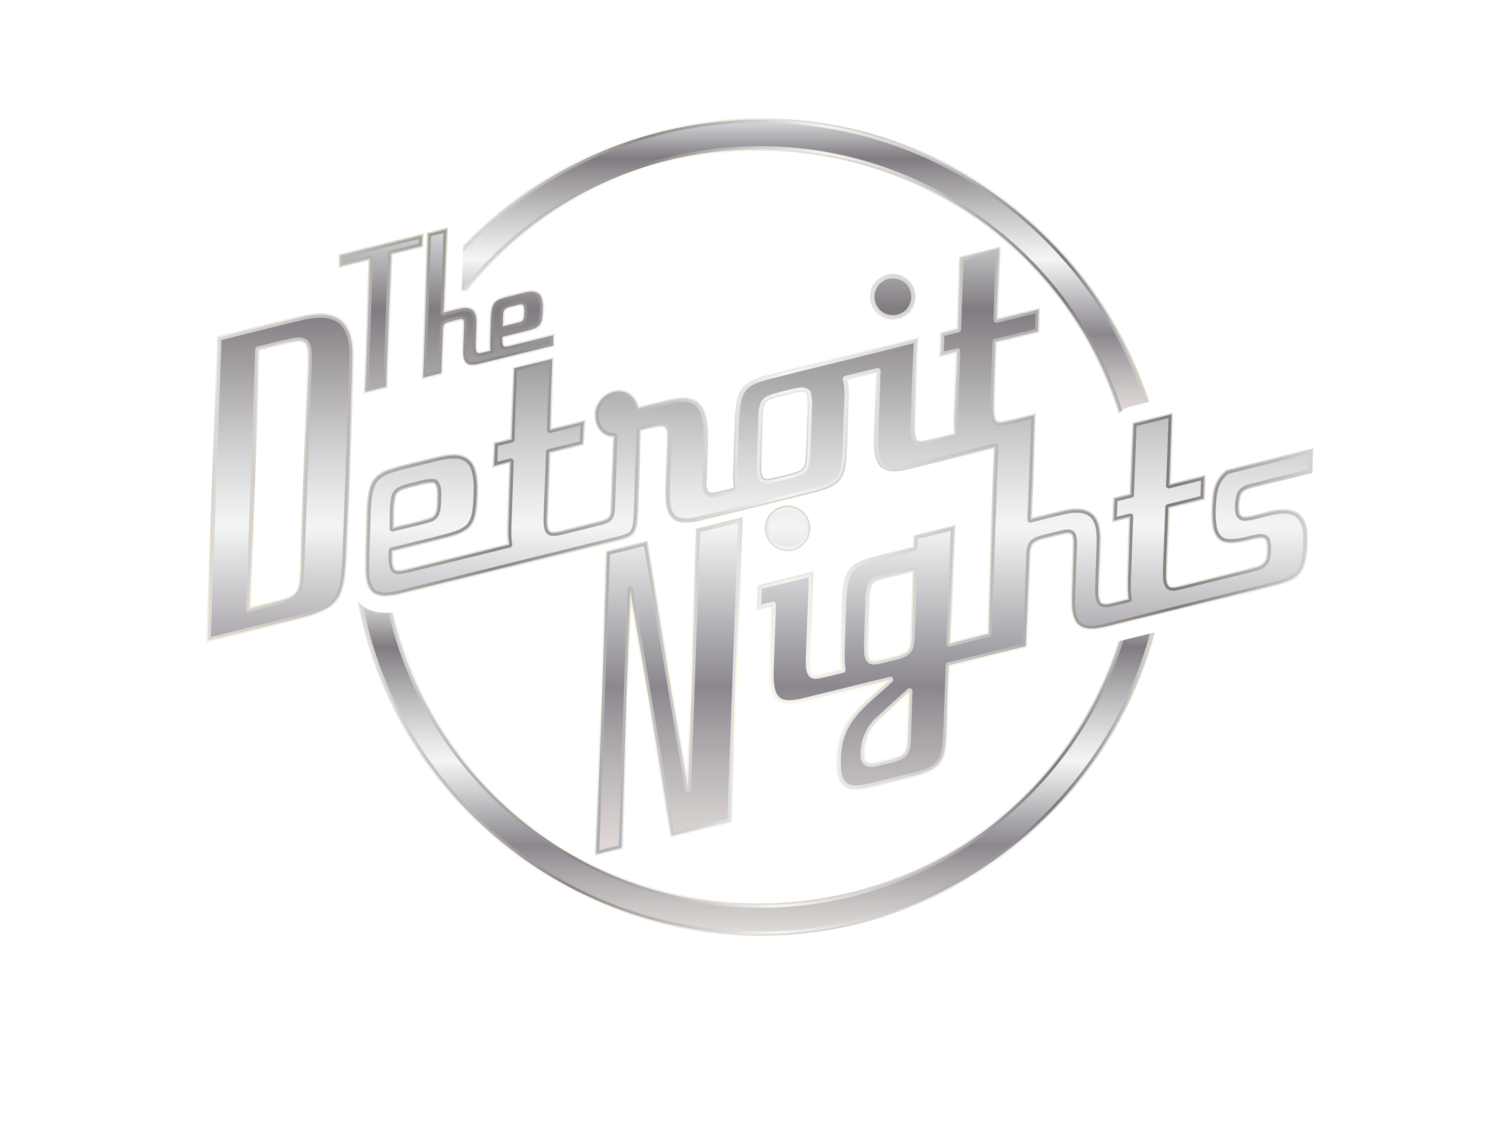 The Detroit Nights